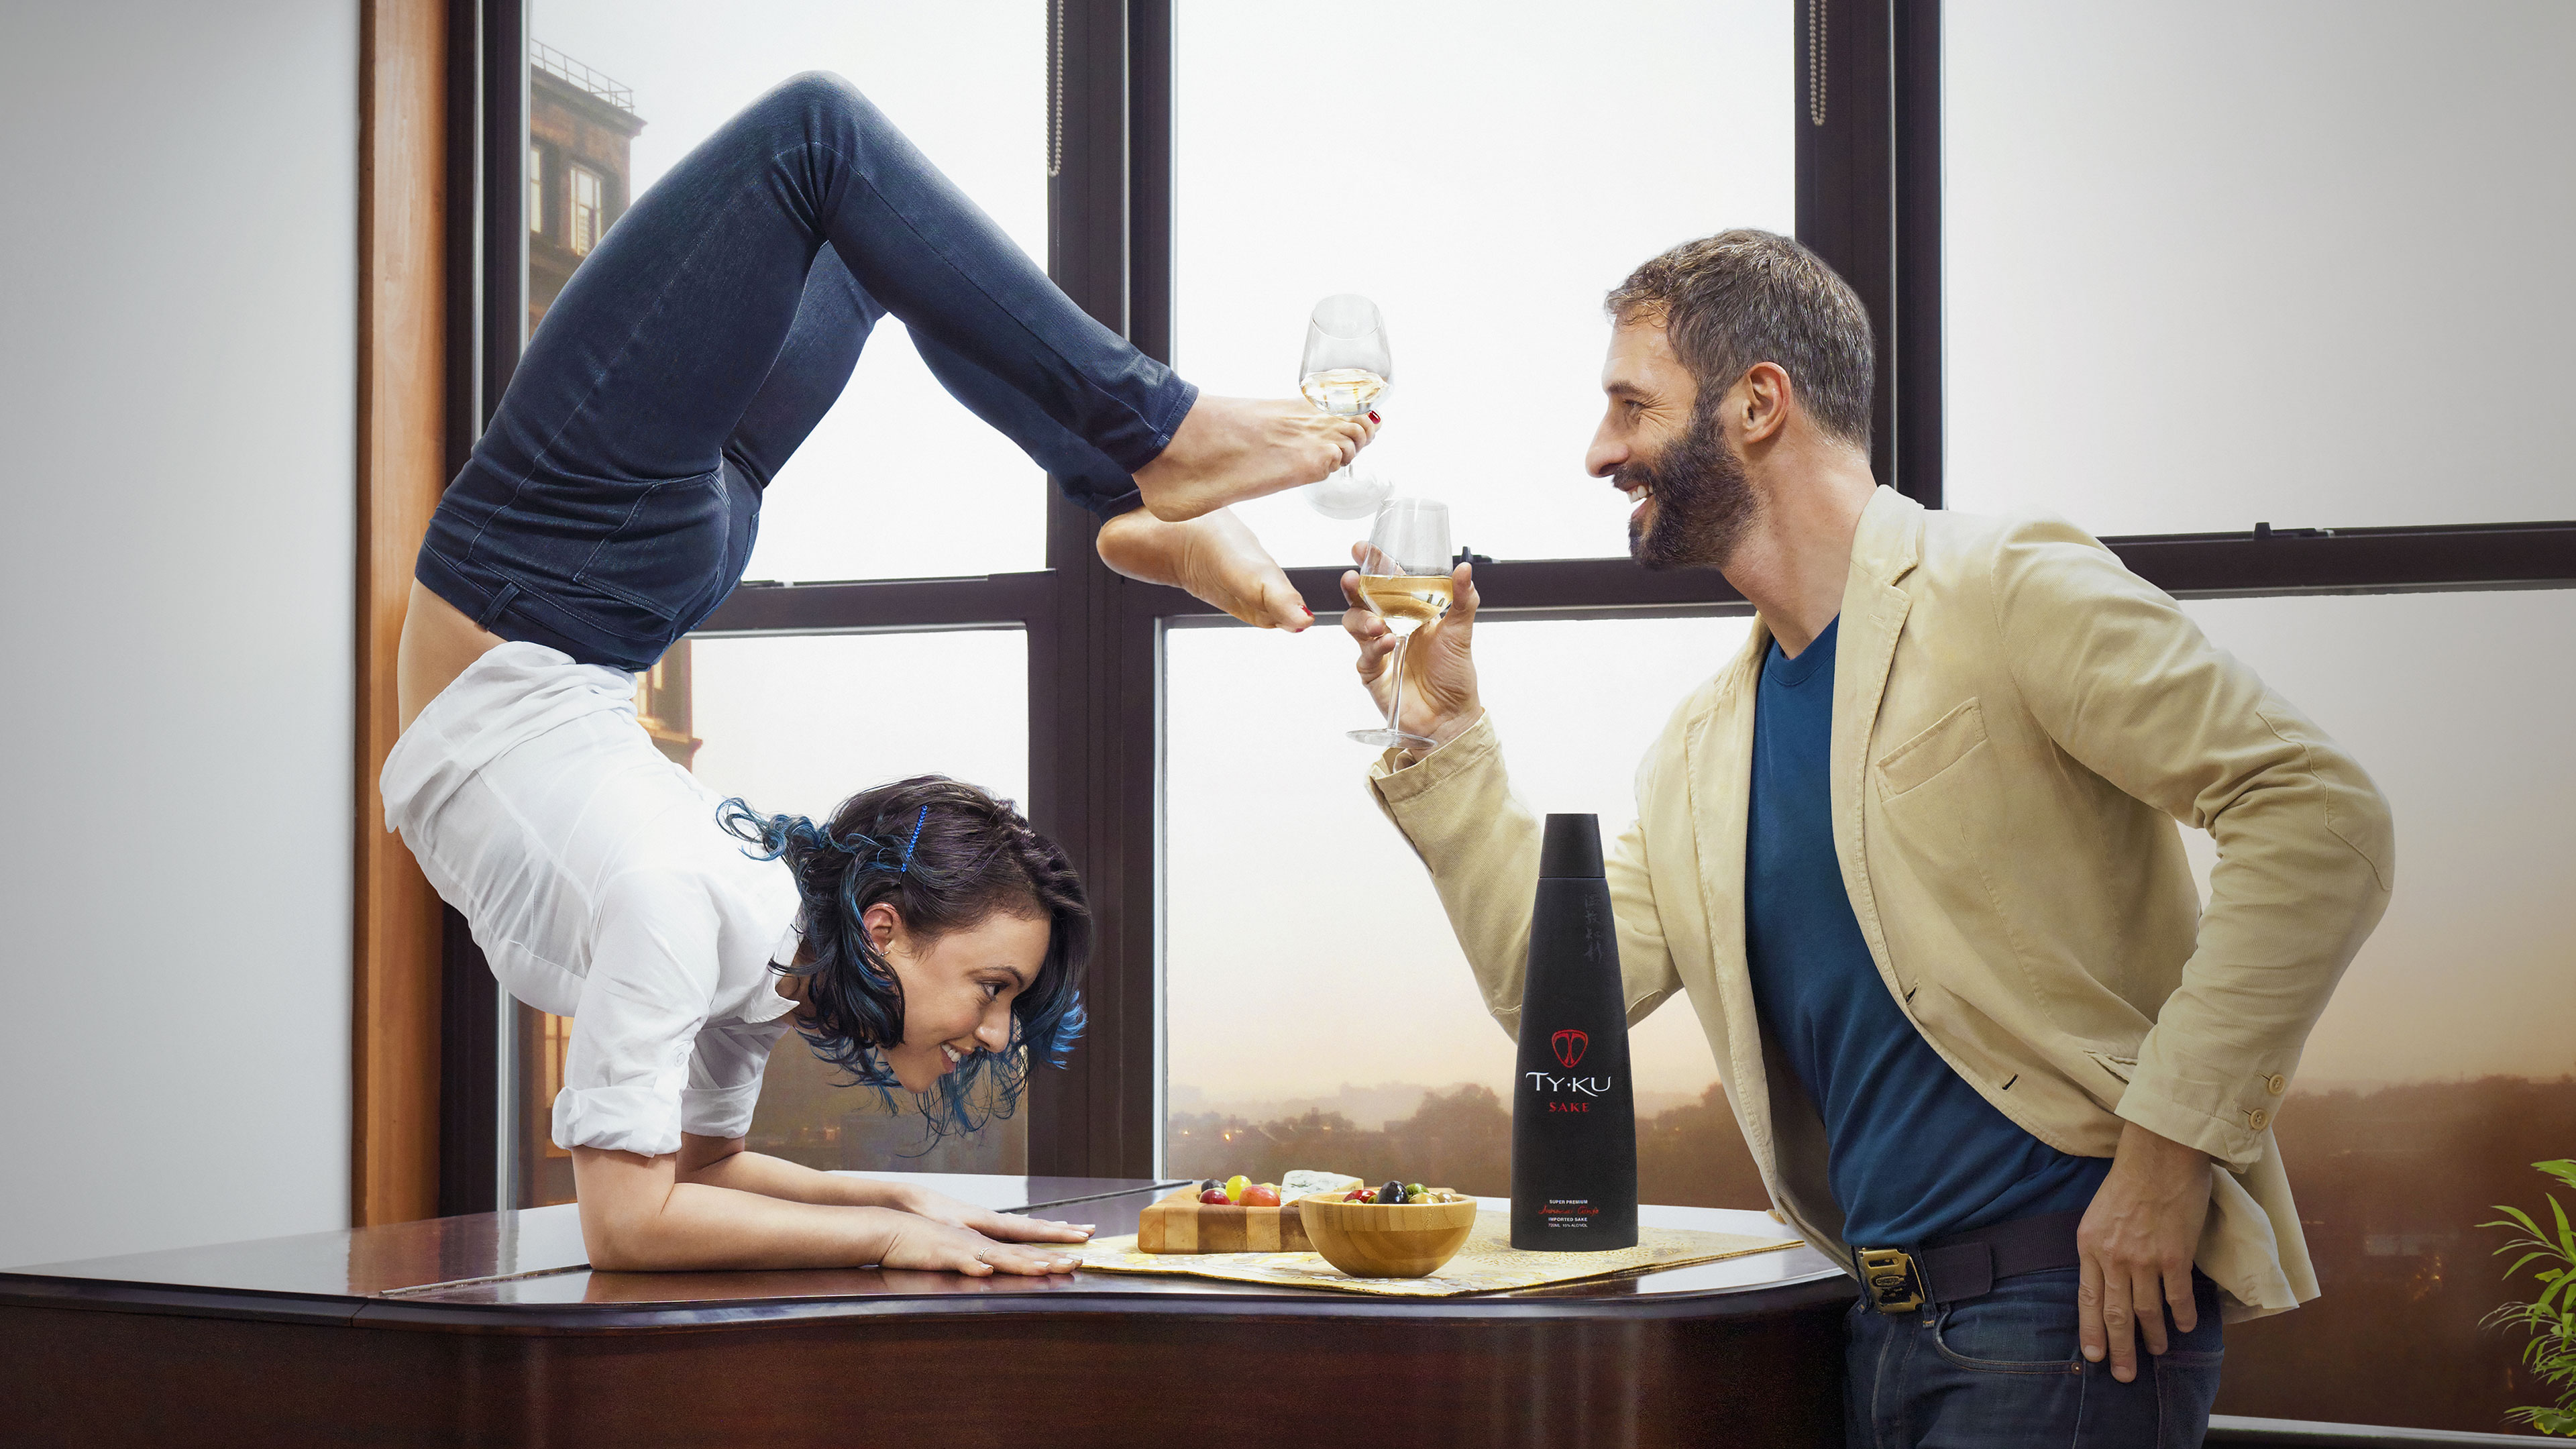 An advertisement for TY KU sake. The company says research shows yogis are more likely to drink alcohol than the broader population.